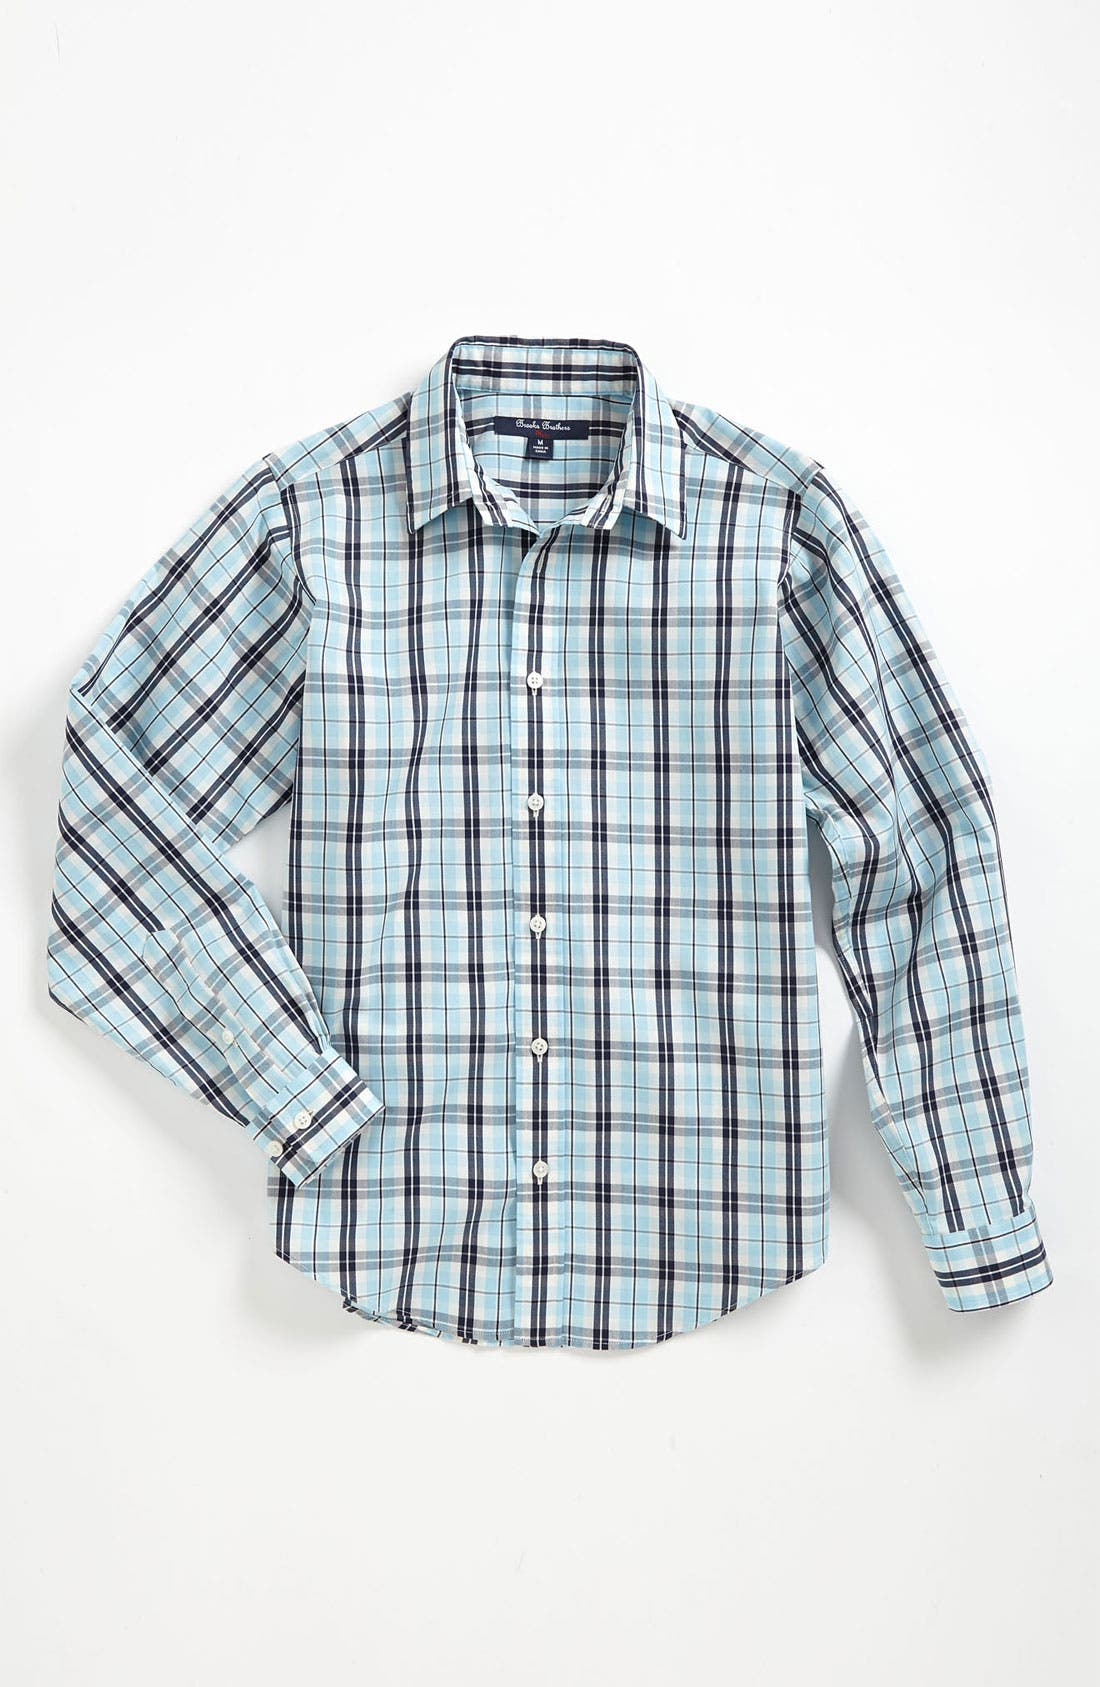 Alternate Image 1 Selected - Brooks Brothers Check Sport Shirt (Big Boys)